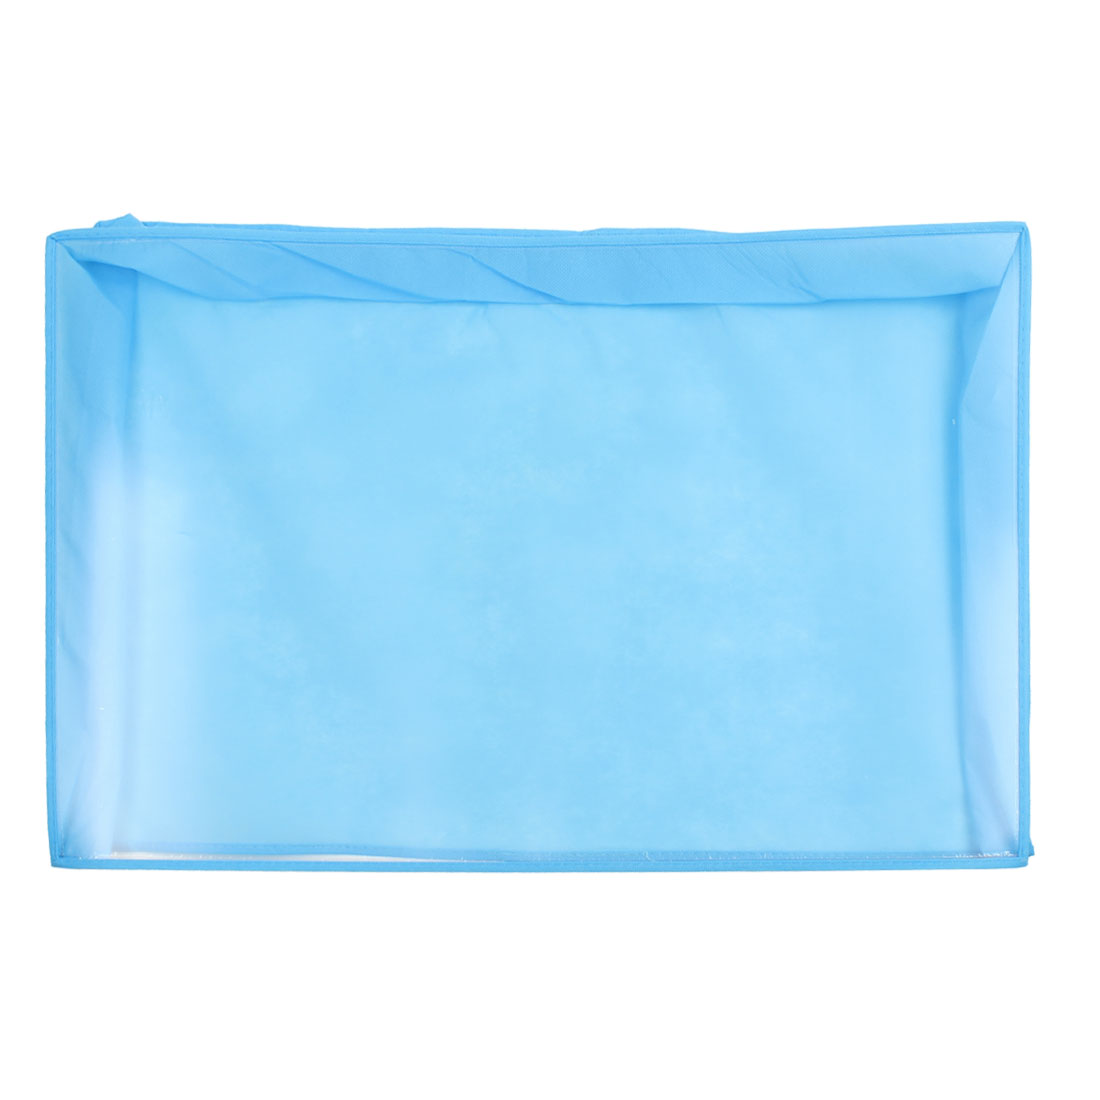 "Desktop PC Blue Dust Cover Protector for 24"" LCD Widescreen Monitor"